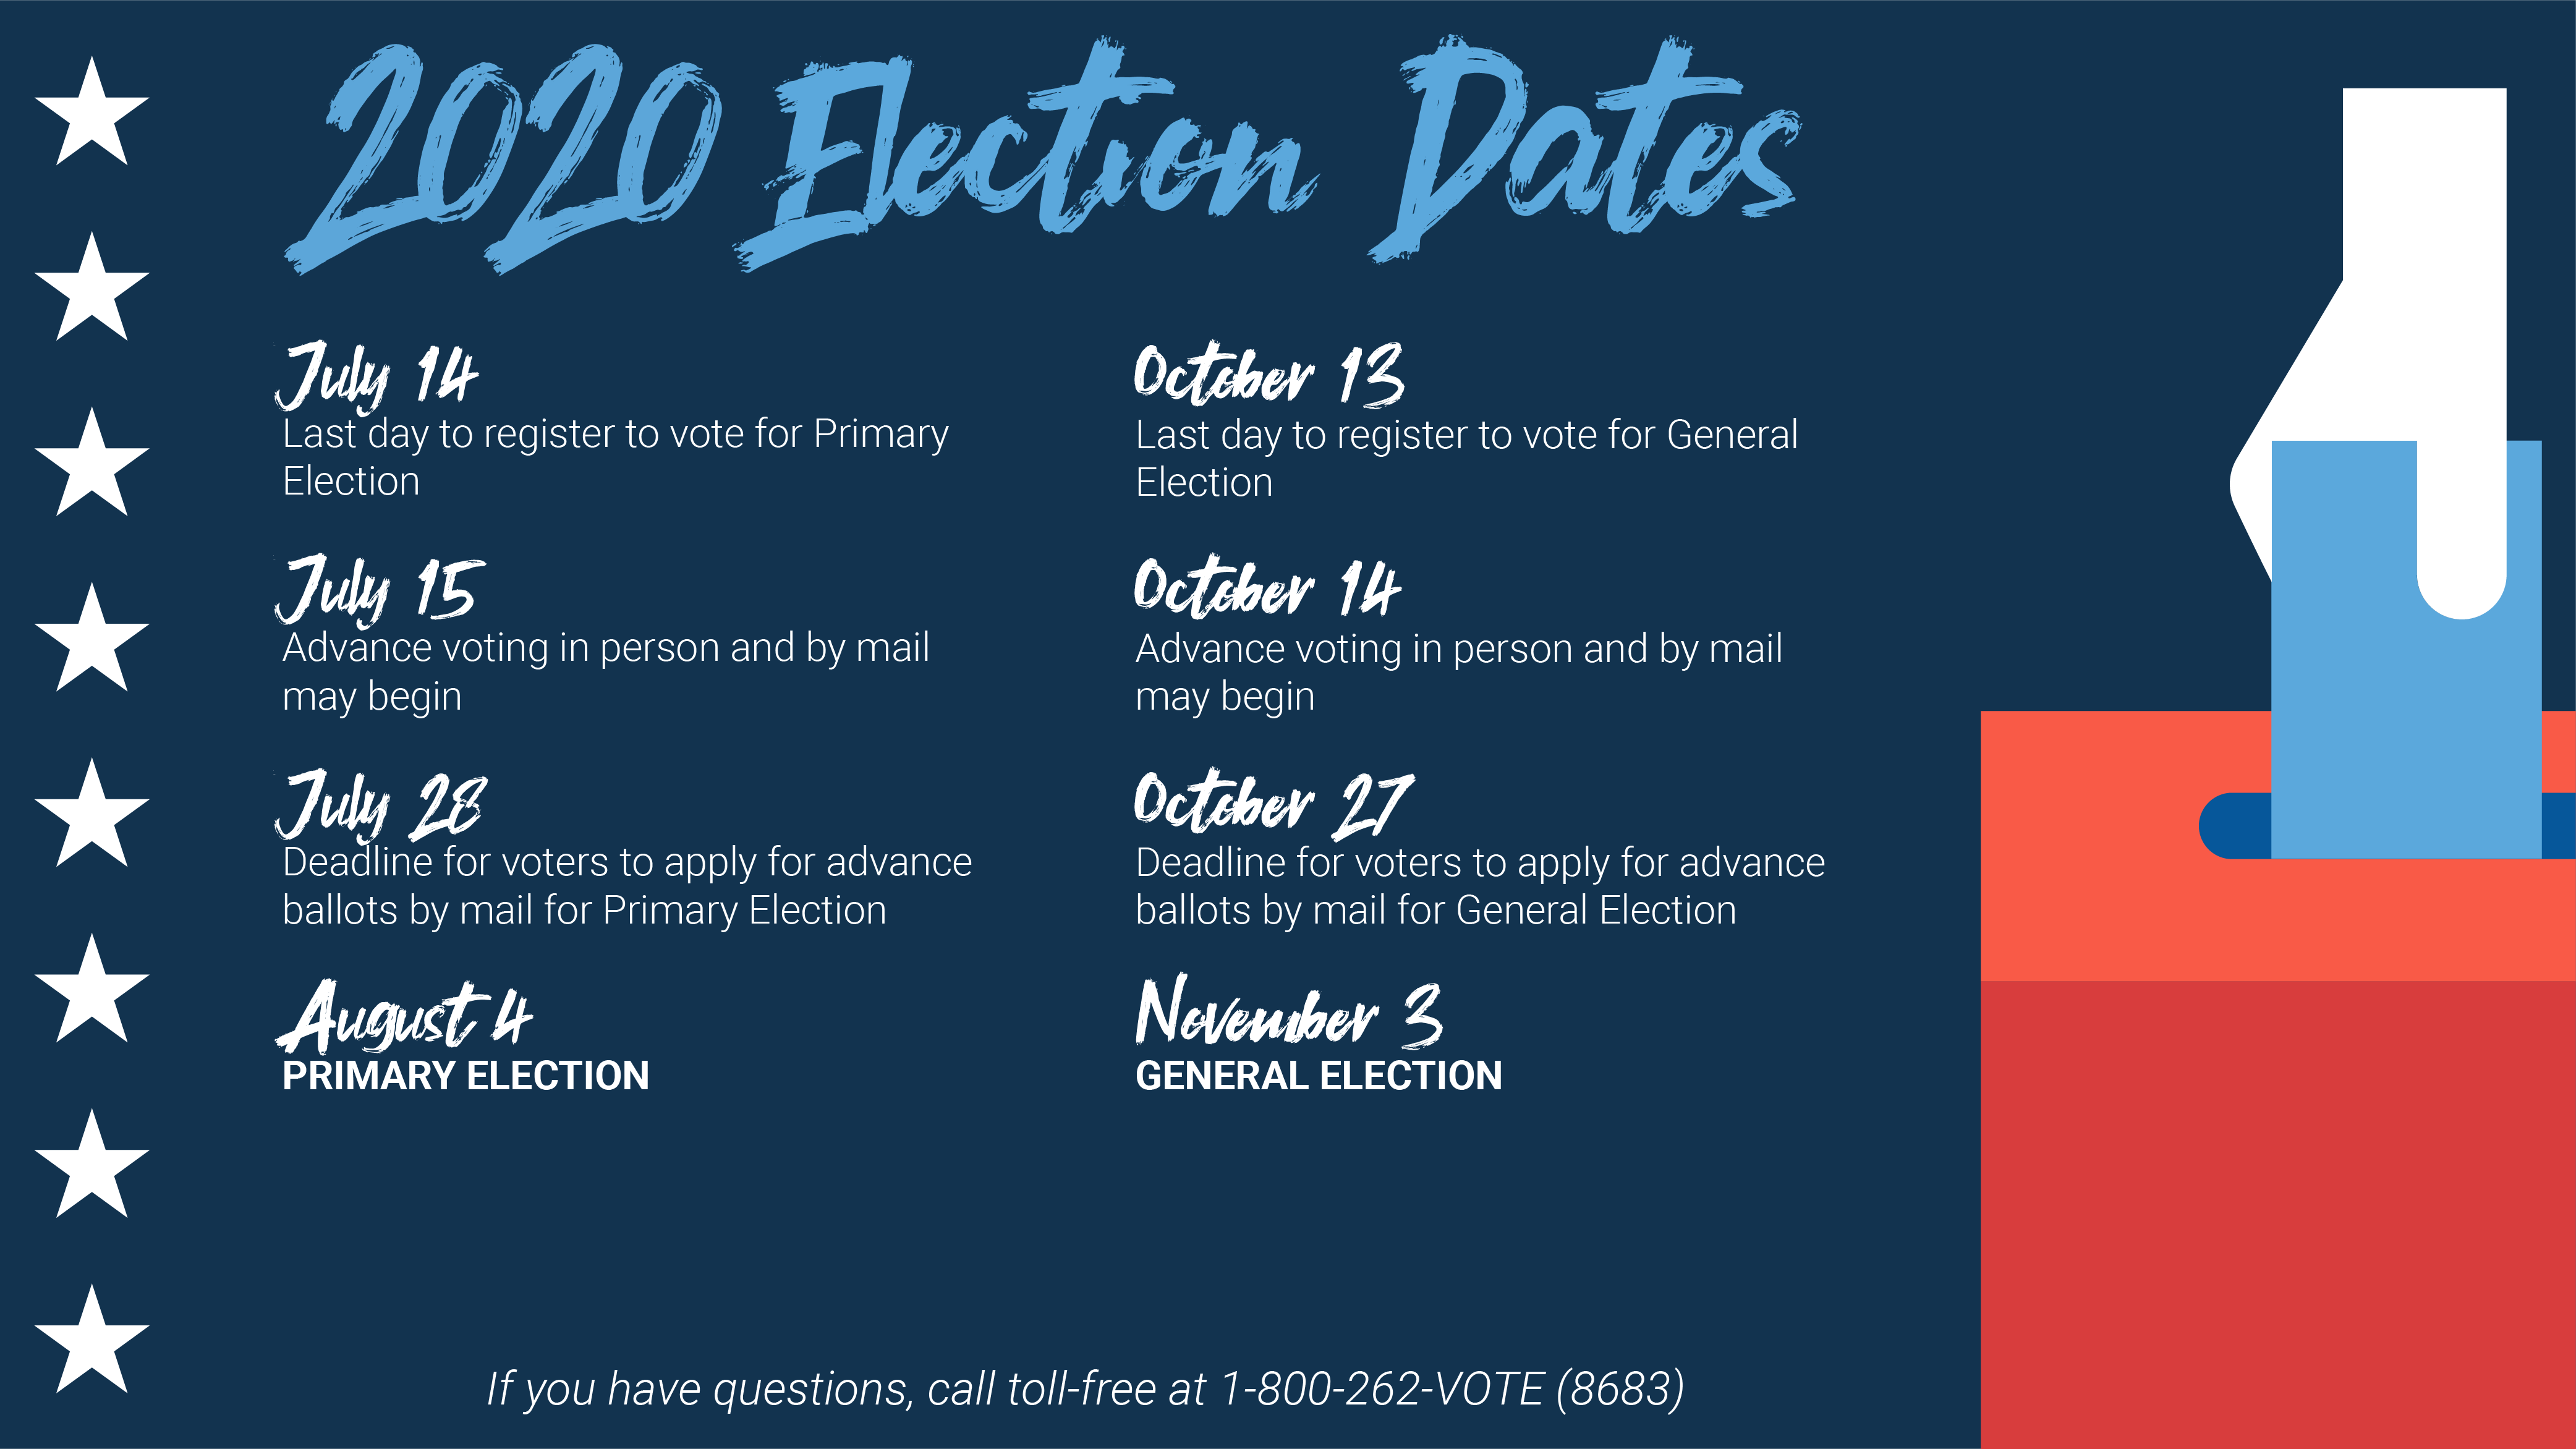 Election Dates graphic